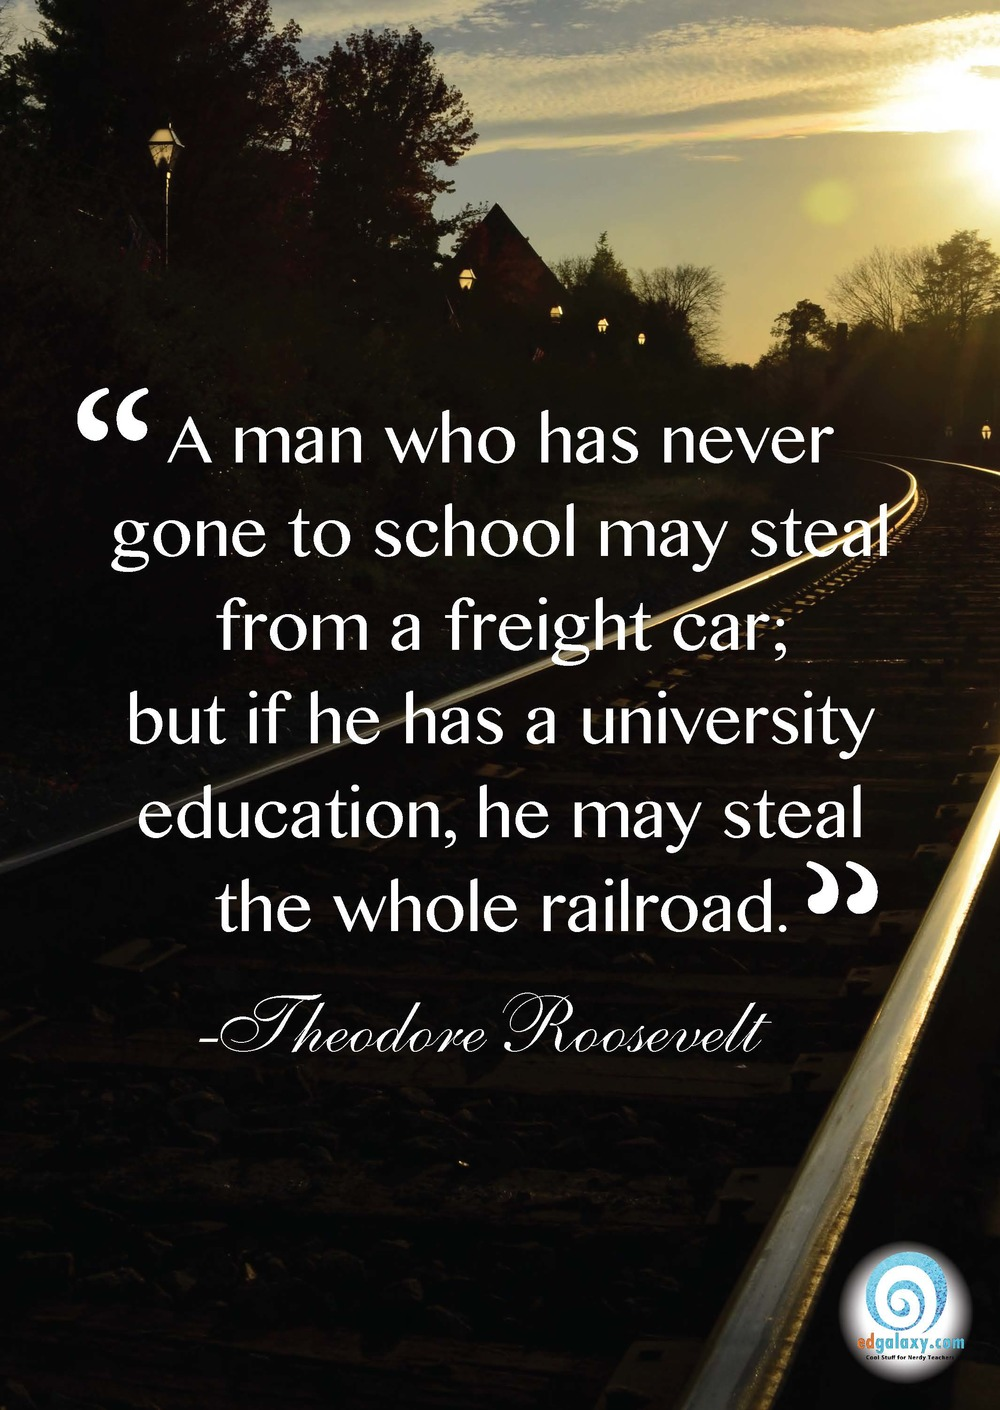 Education Quotes Posters 2 jpg_Page_13.jpg